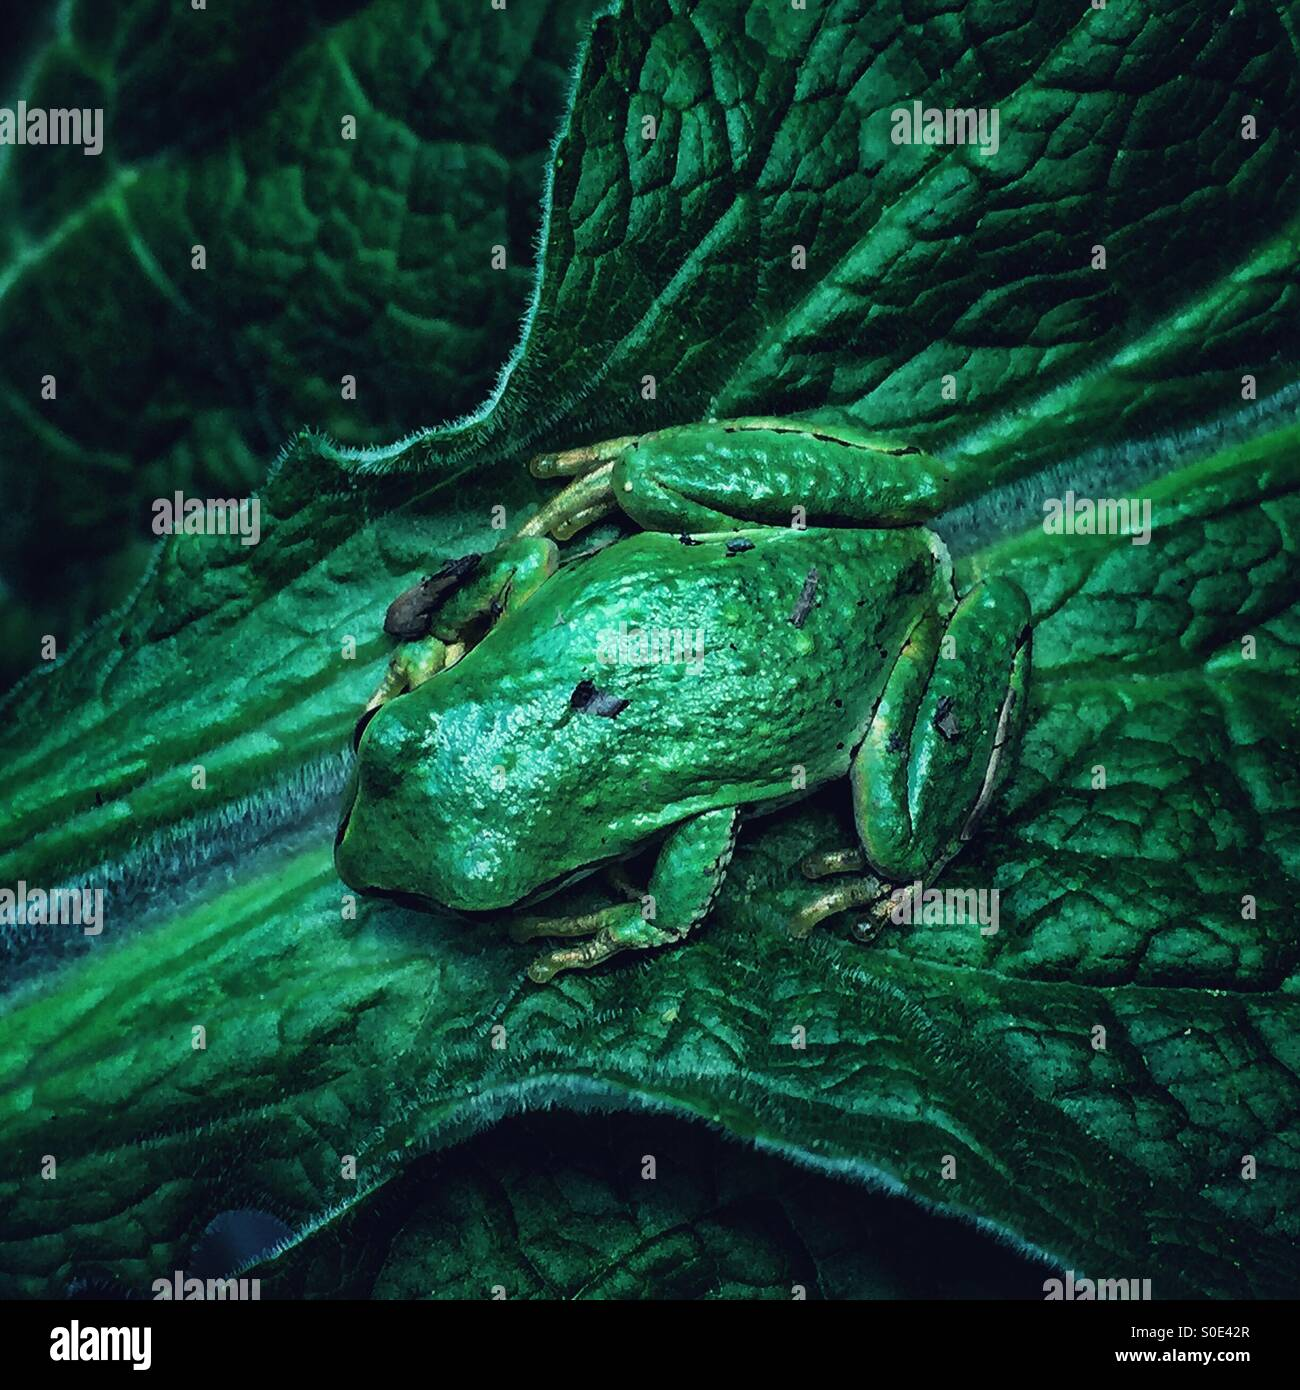 green frog on green leaf - Stock Image